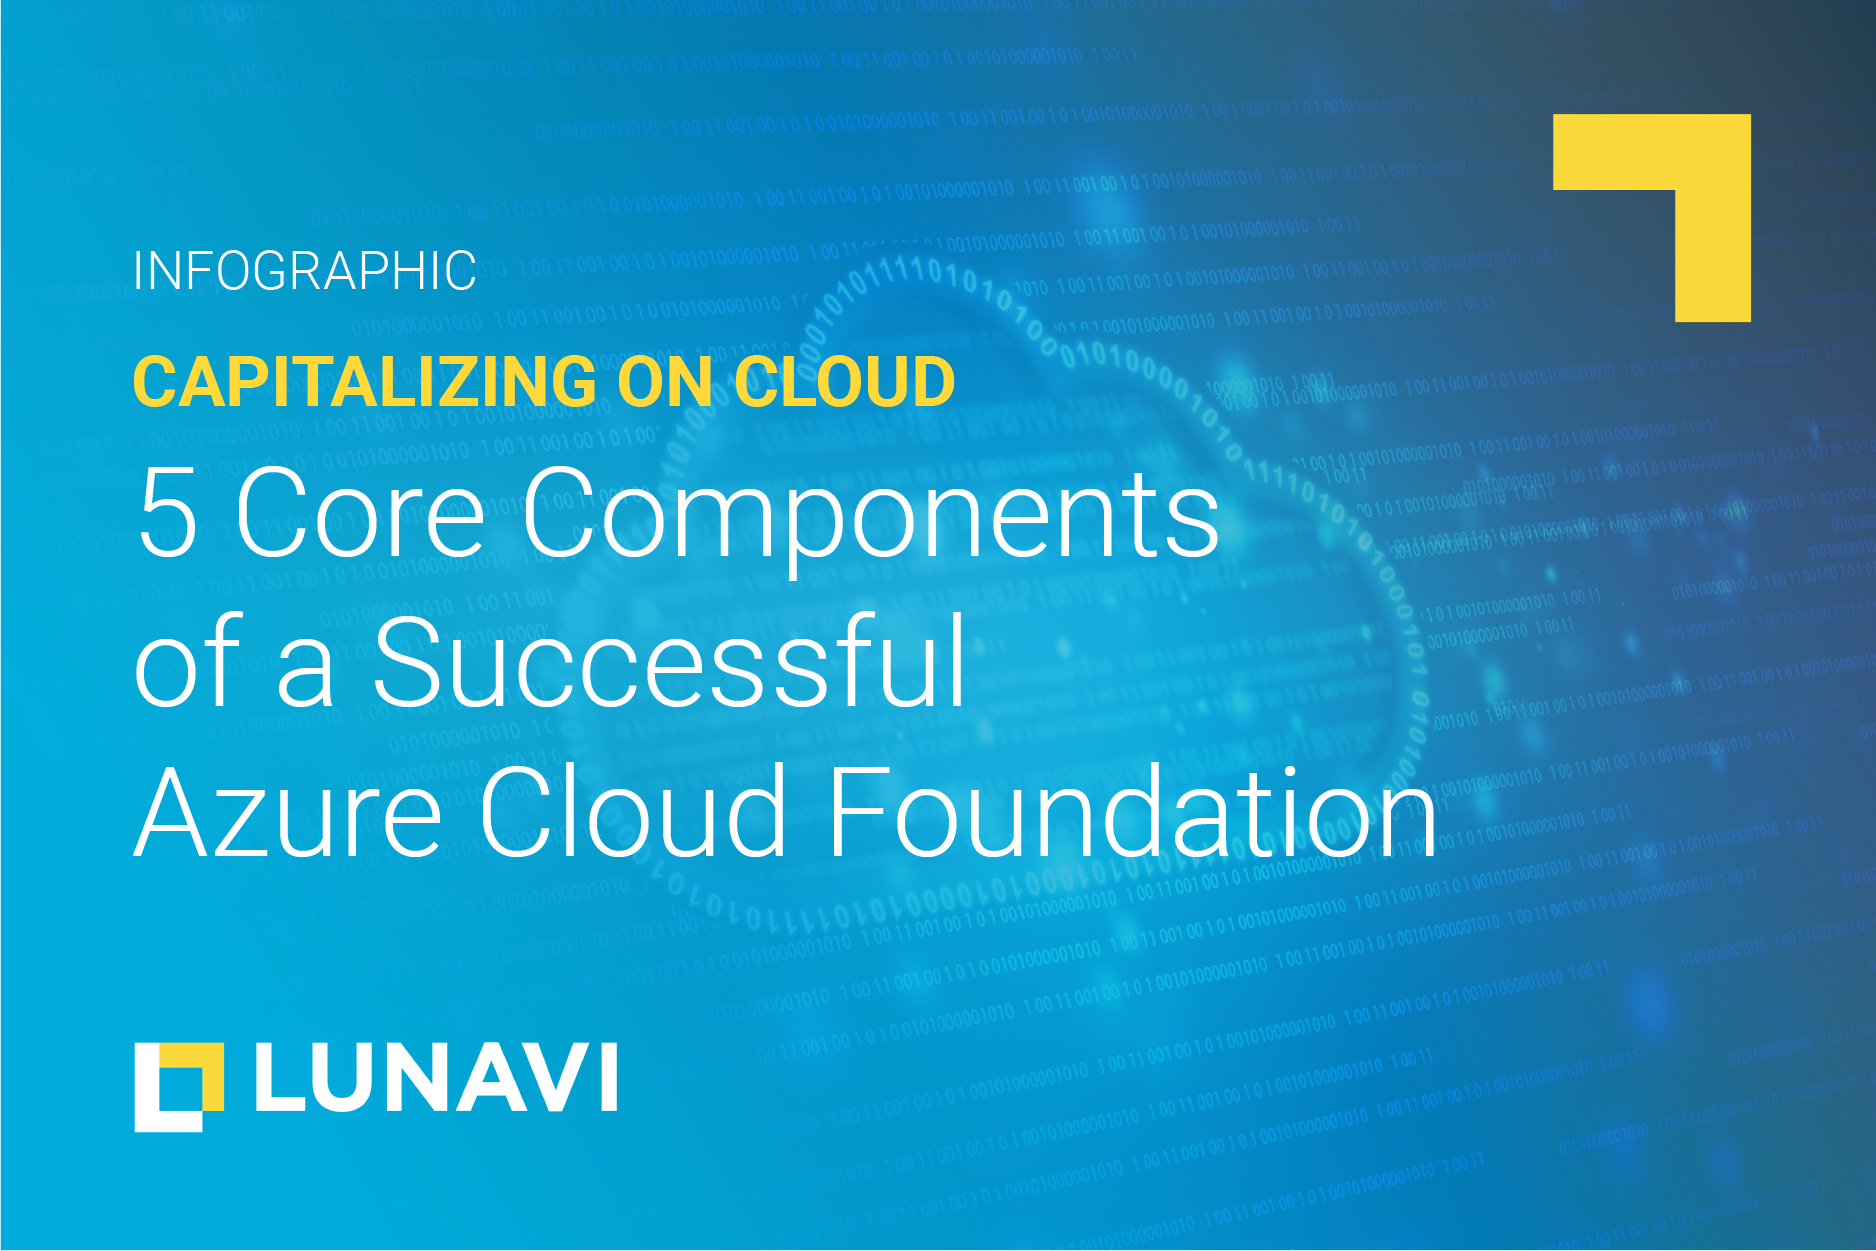 5 Core Components of a Successful Azure Cloud Foundation [Infographic]